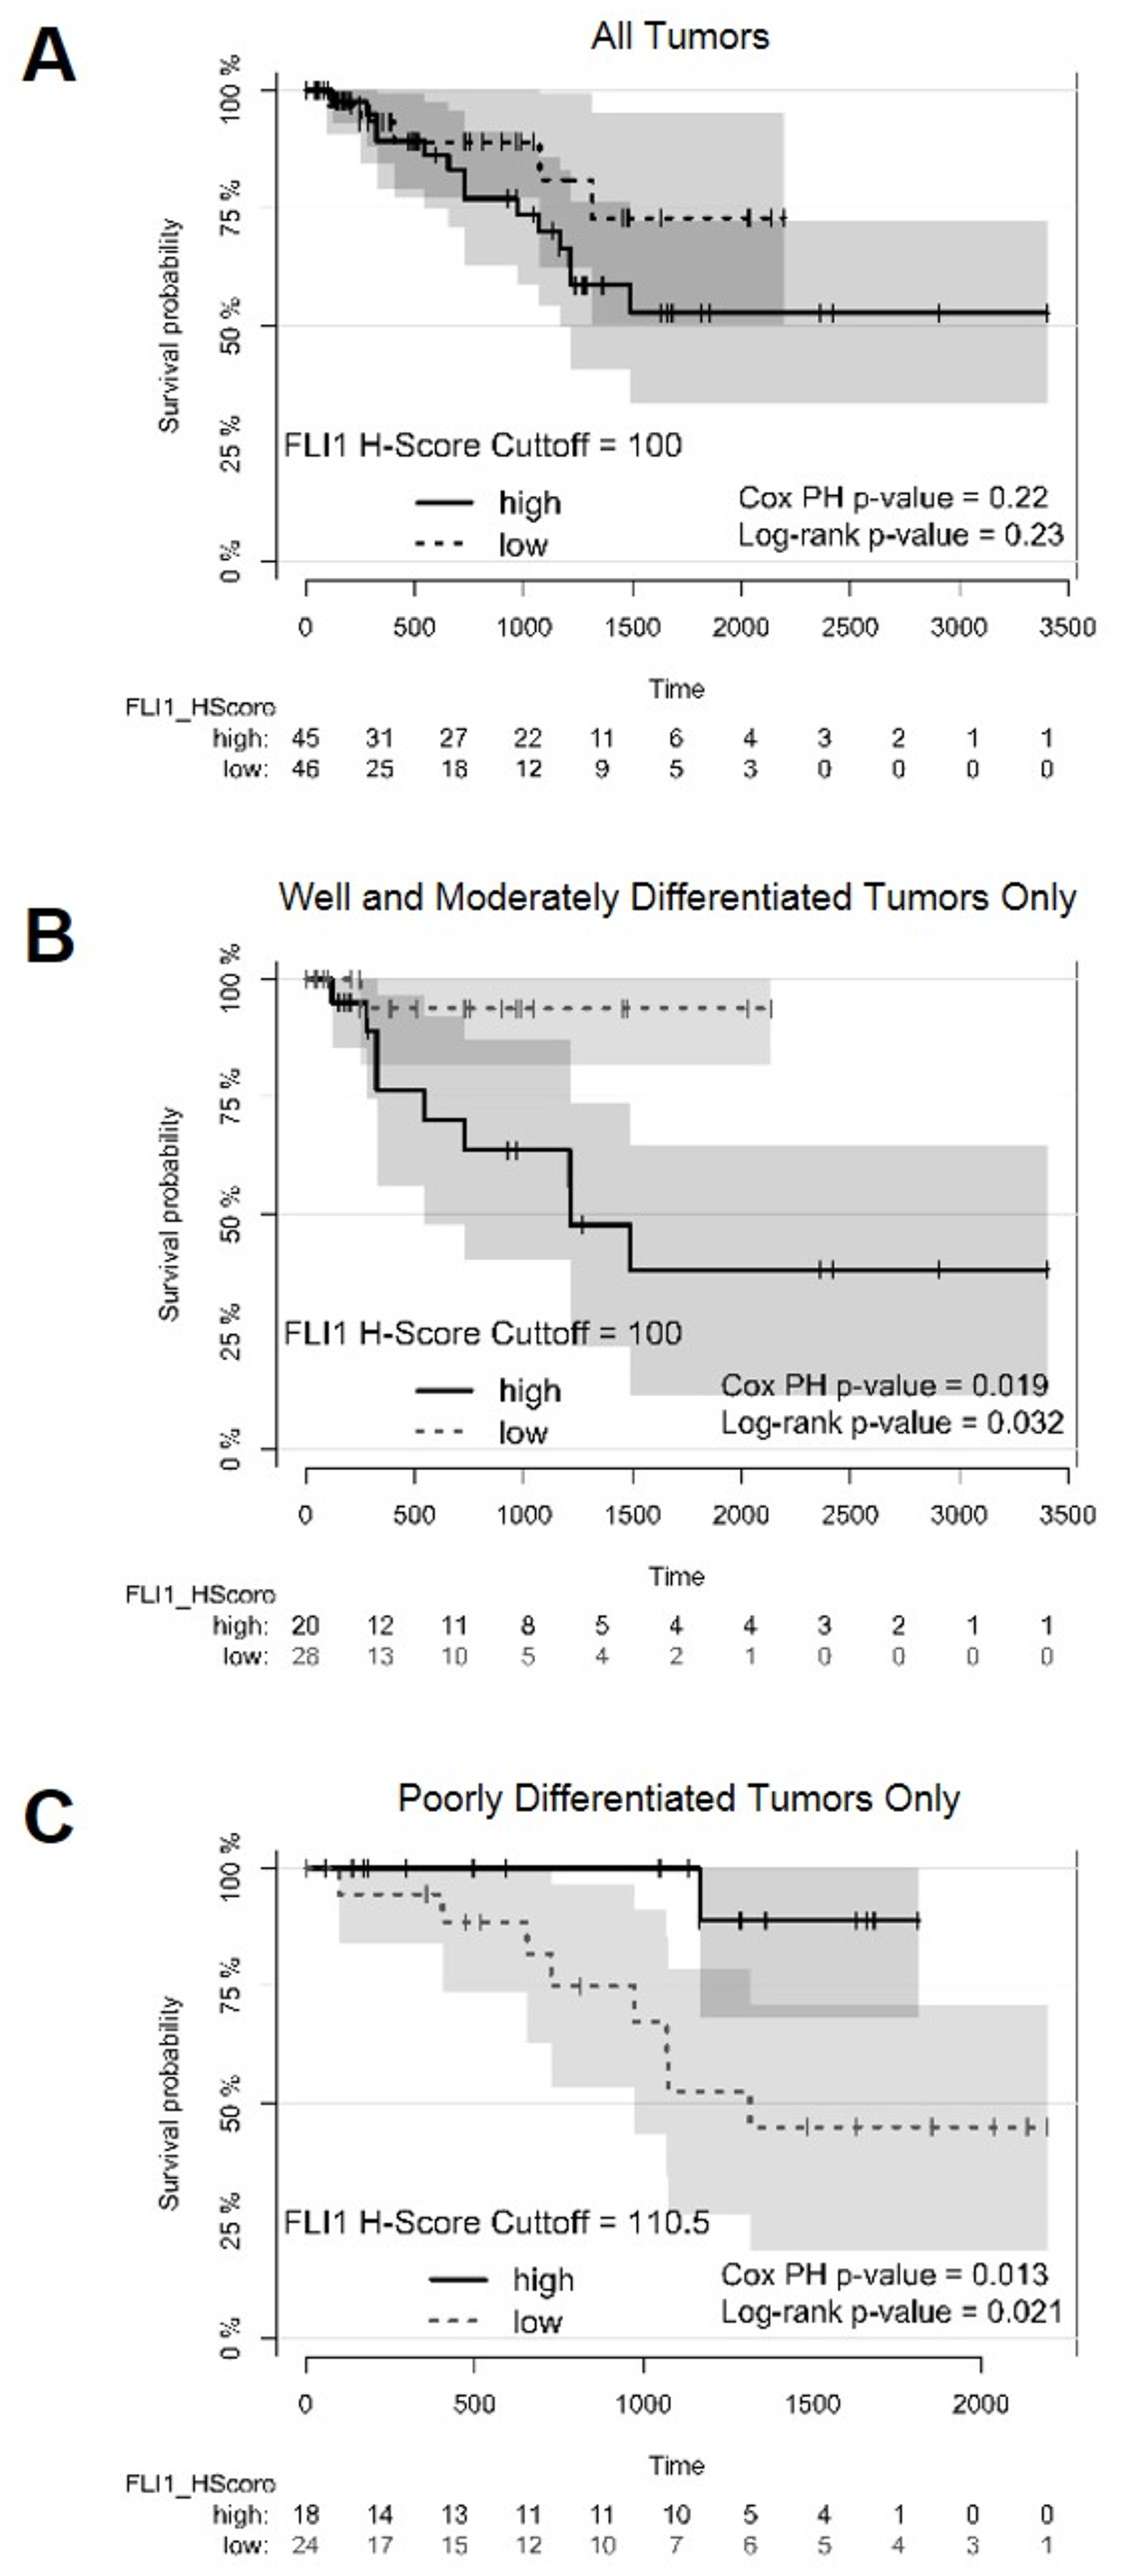 Survival plots of patients with optimal cutoffs for high and low FLI1 H-scores